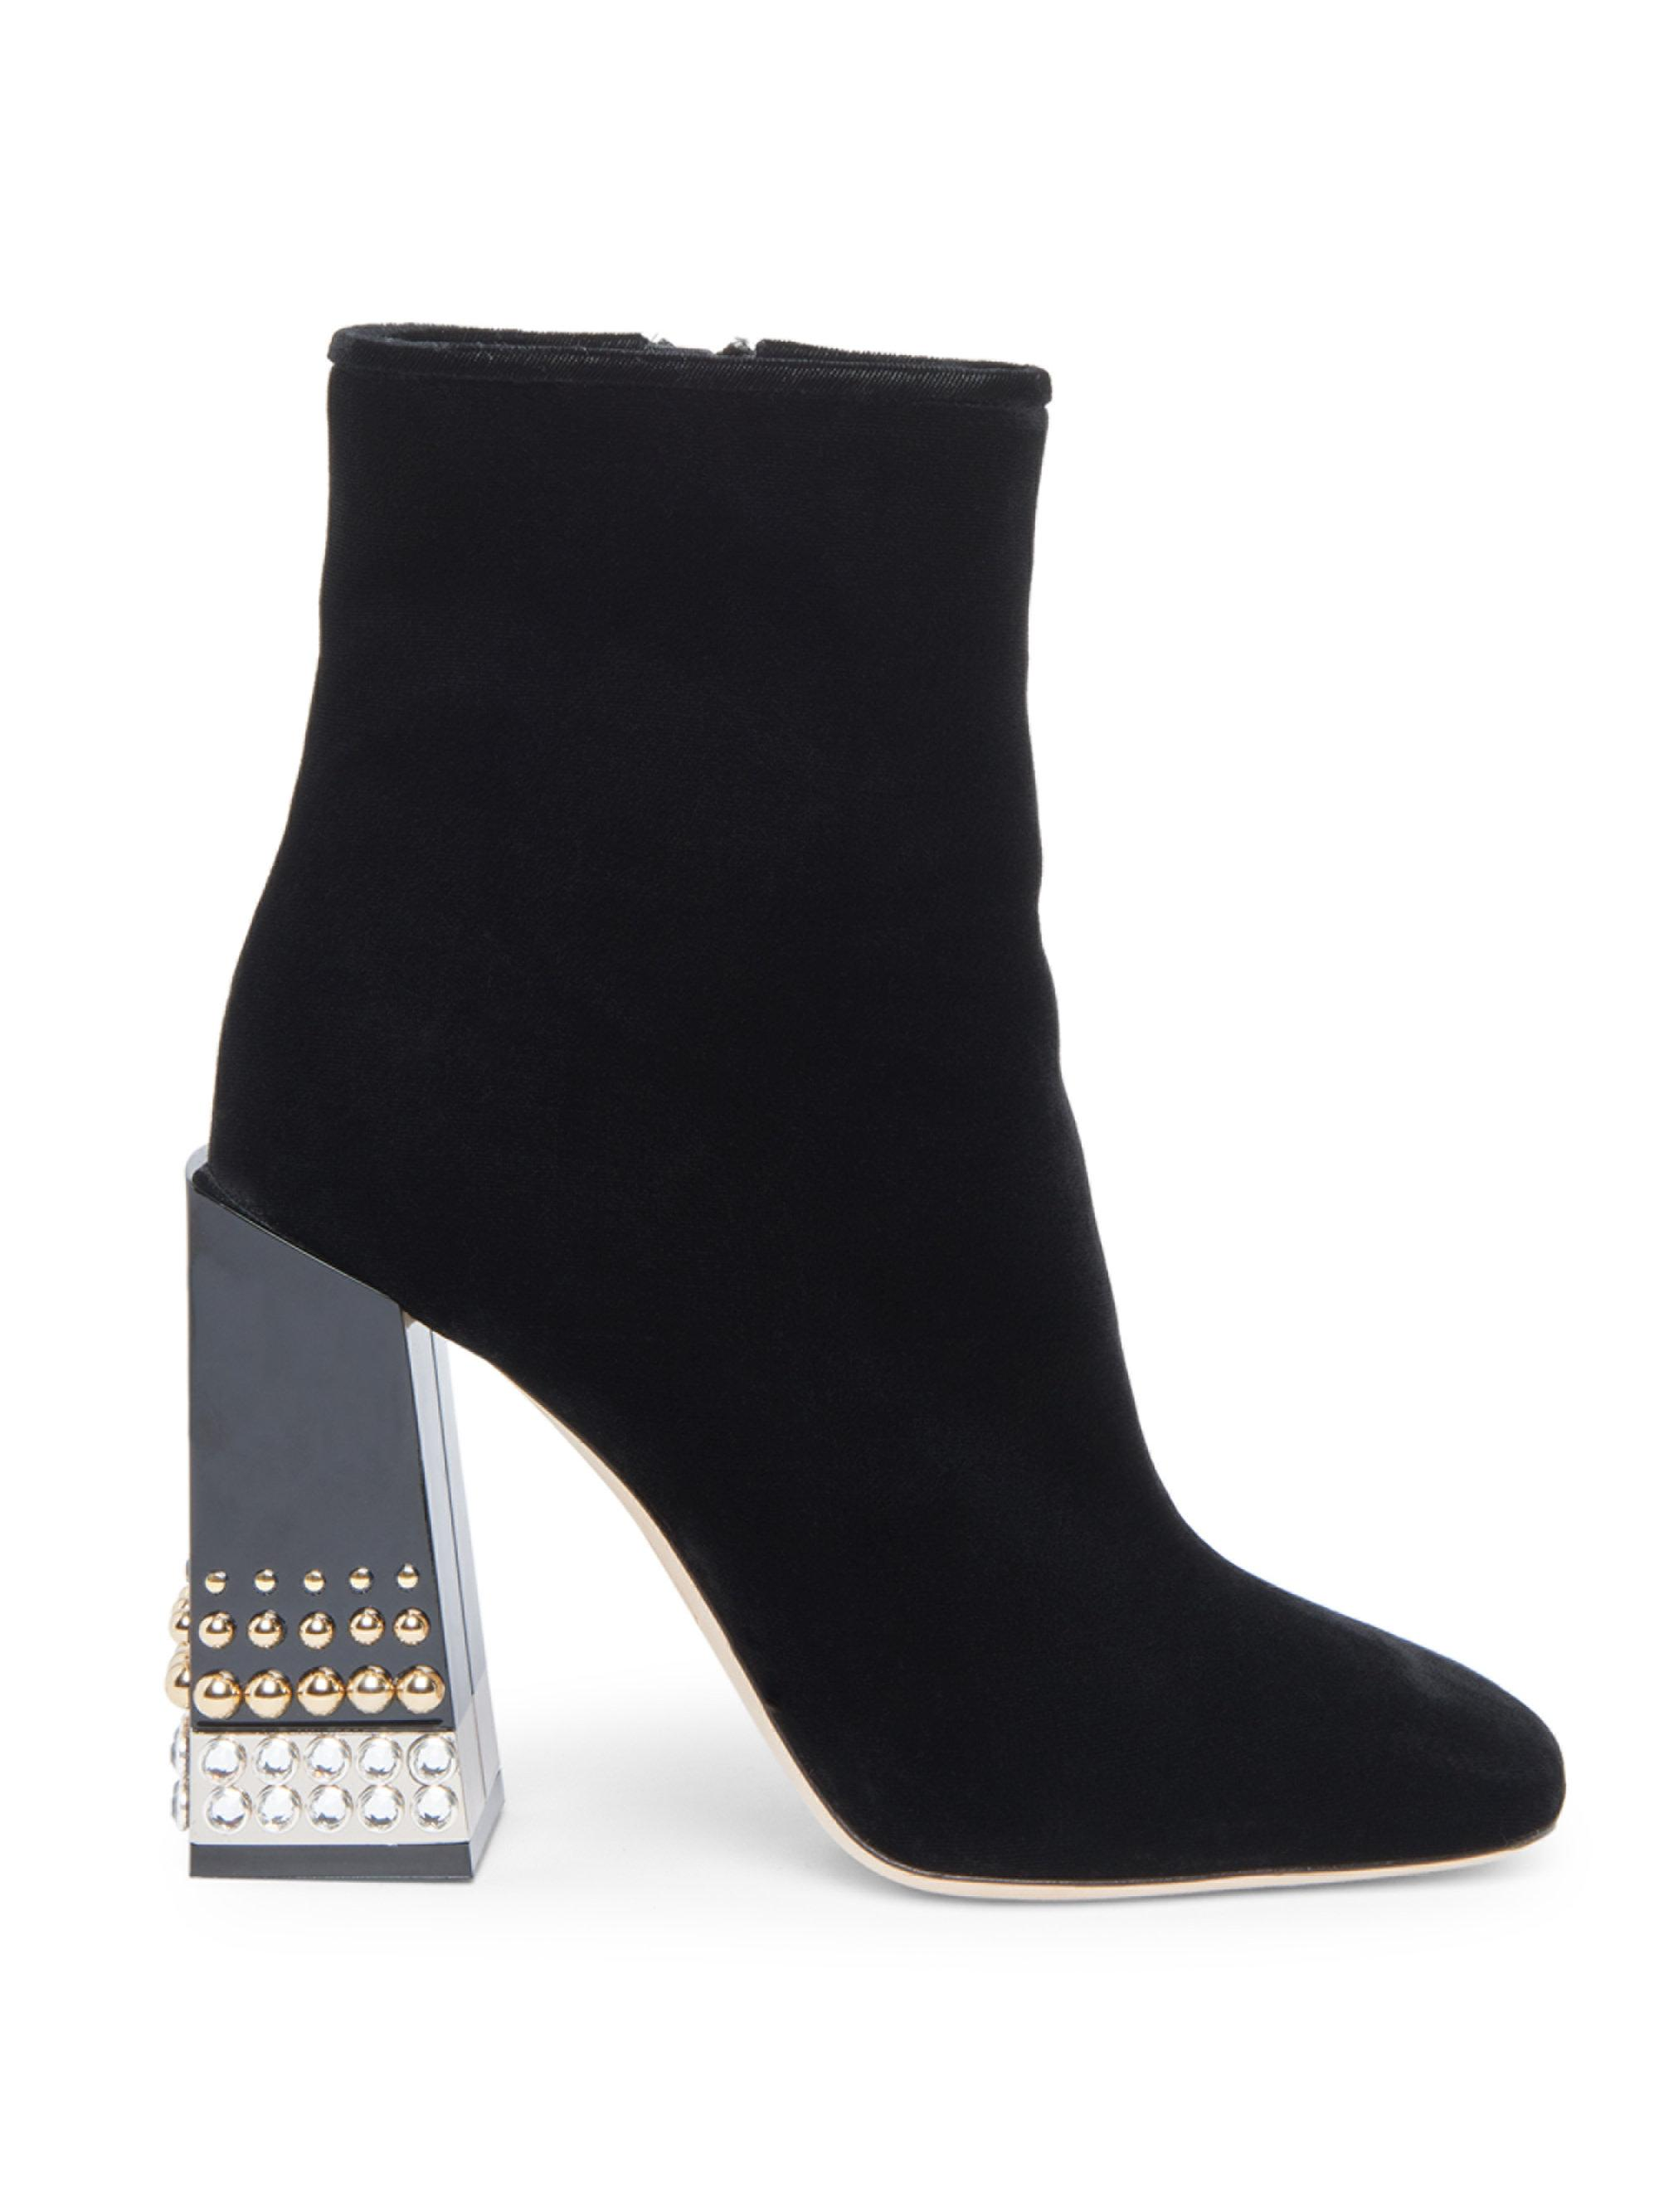 Dolce & Gabbana Side Zip Booties 246bsTiqQ